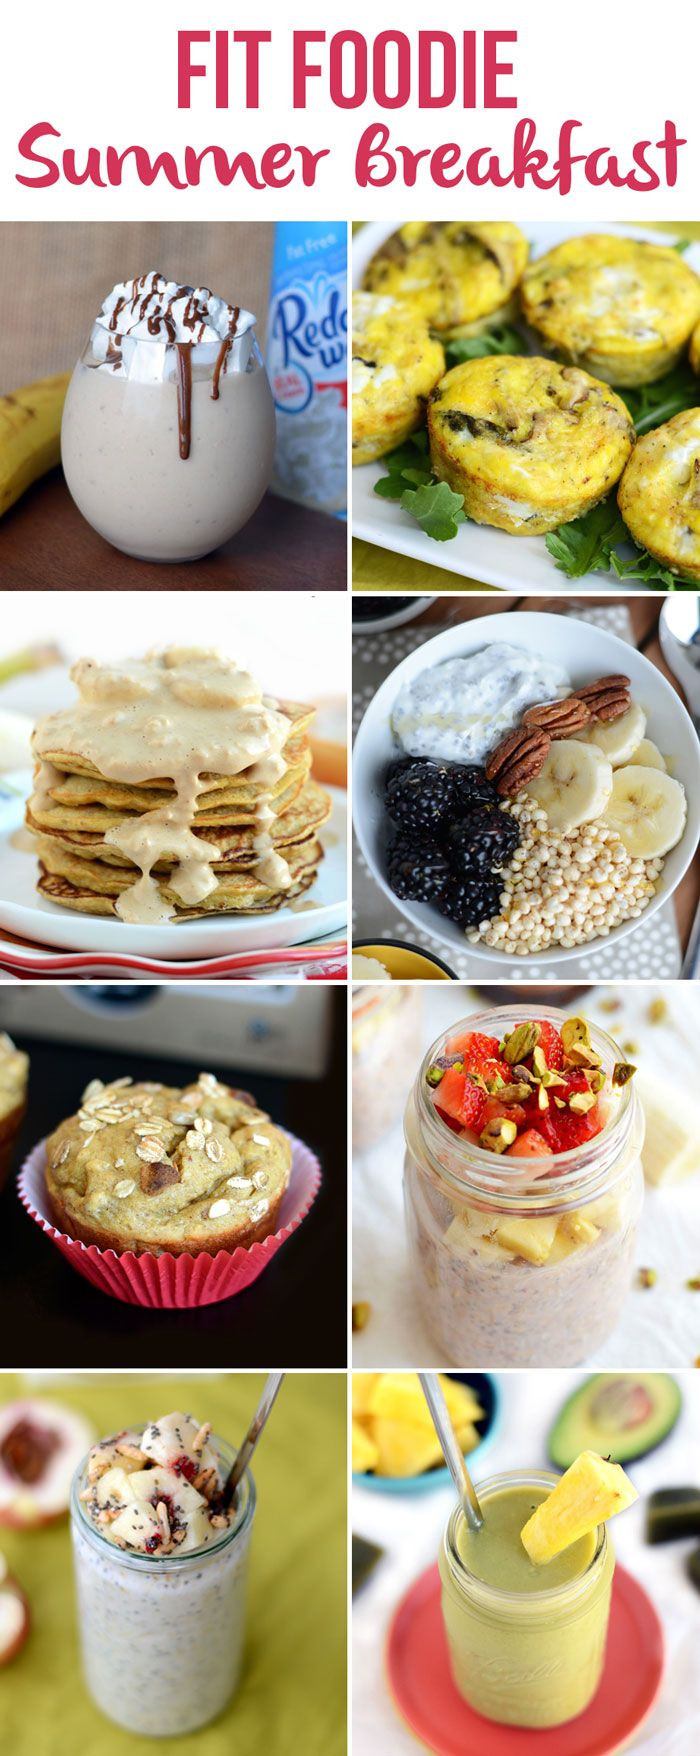 Summer Breakfast Recipe  17 Best images about Breakfast Recipes on Pinterest